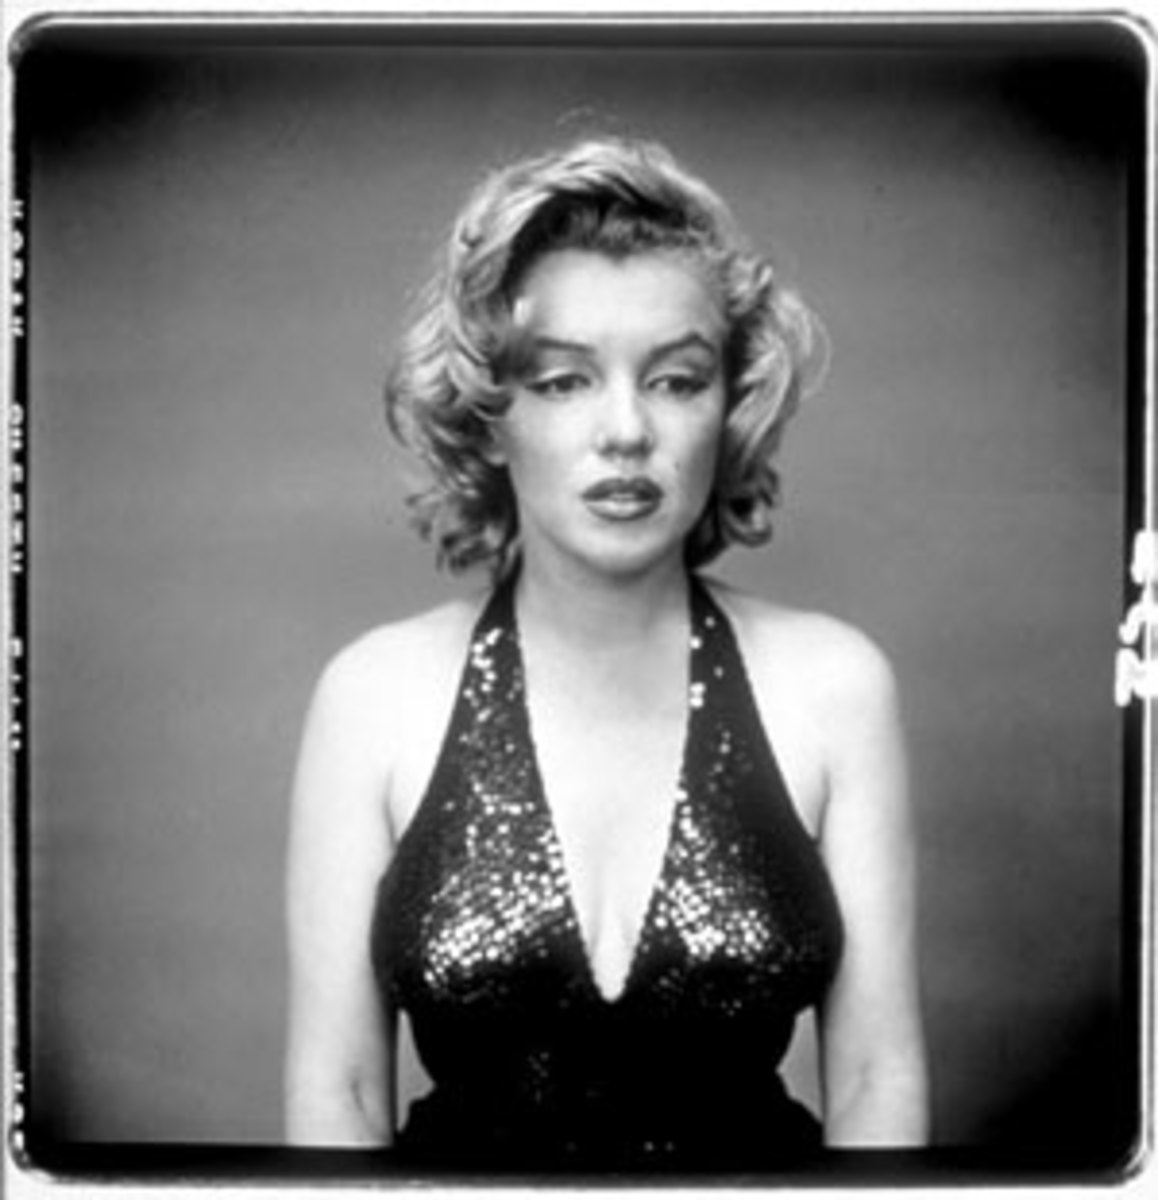 """MARILYN MONROE"" BY RICHARD AVEDON IN 1957"